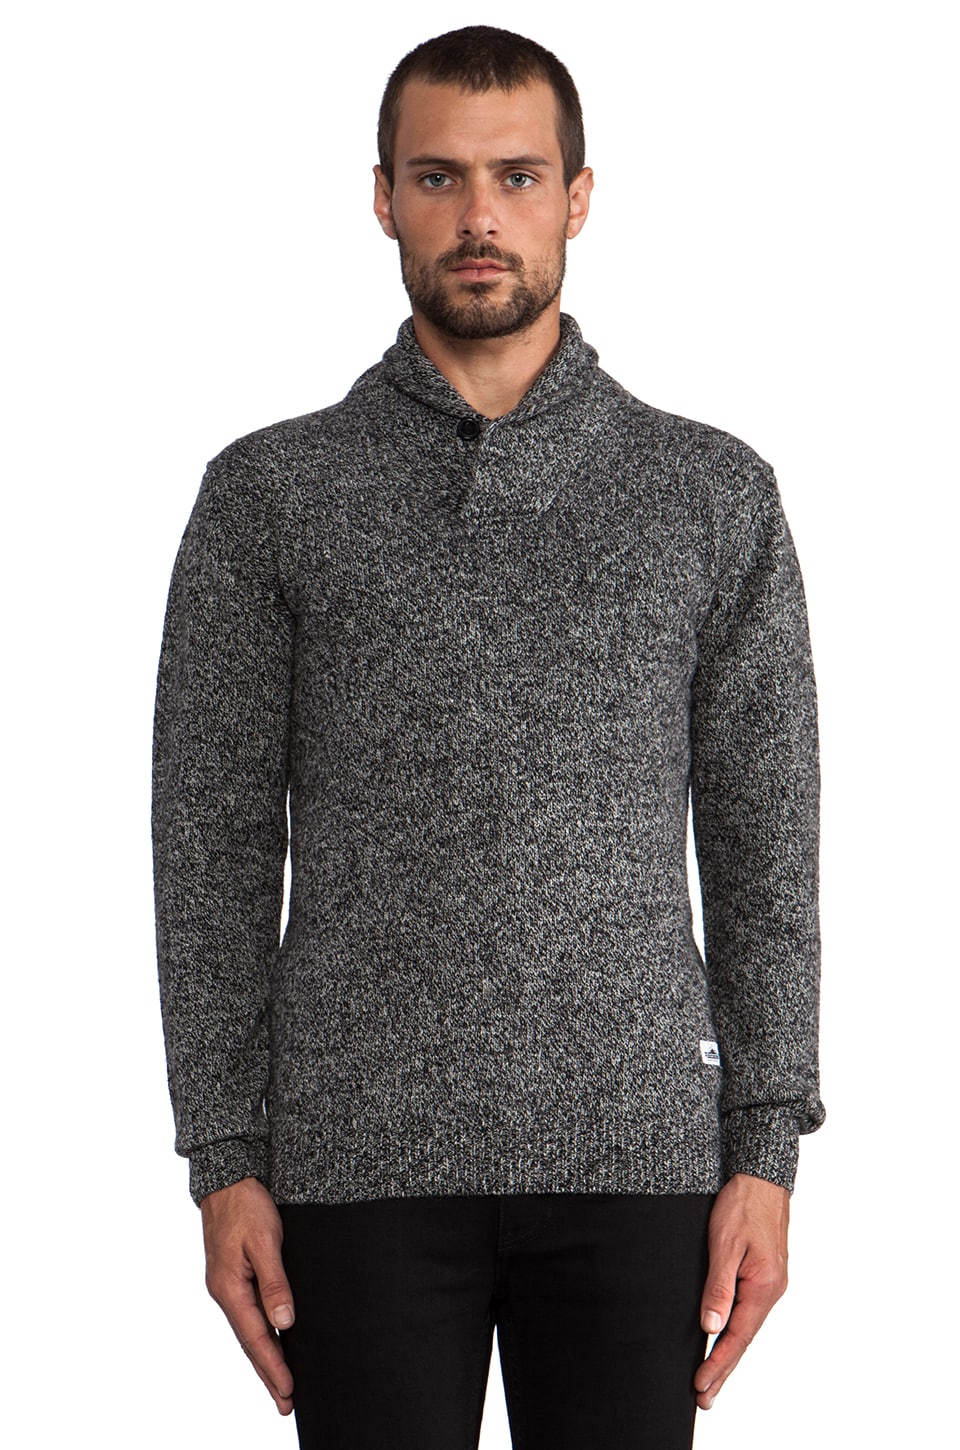 Penfield Bayfield Shawl Collar Melange Jumper in Black/ White